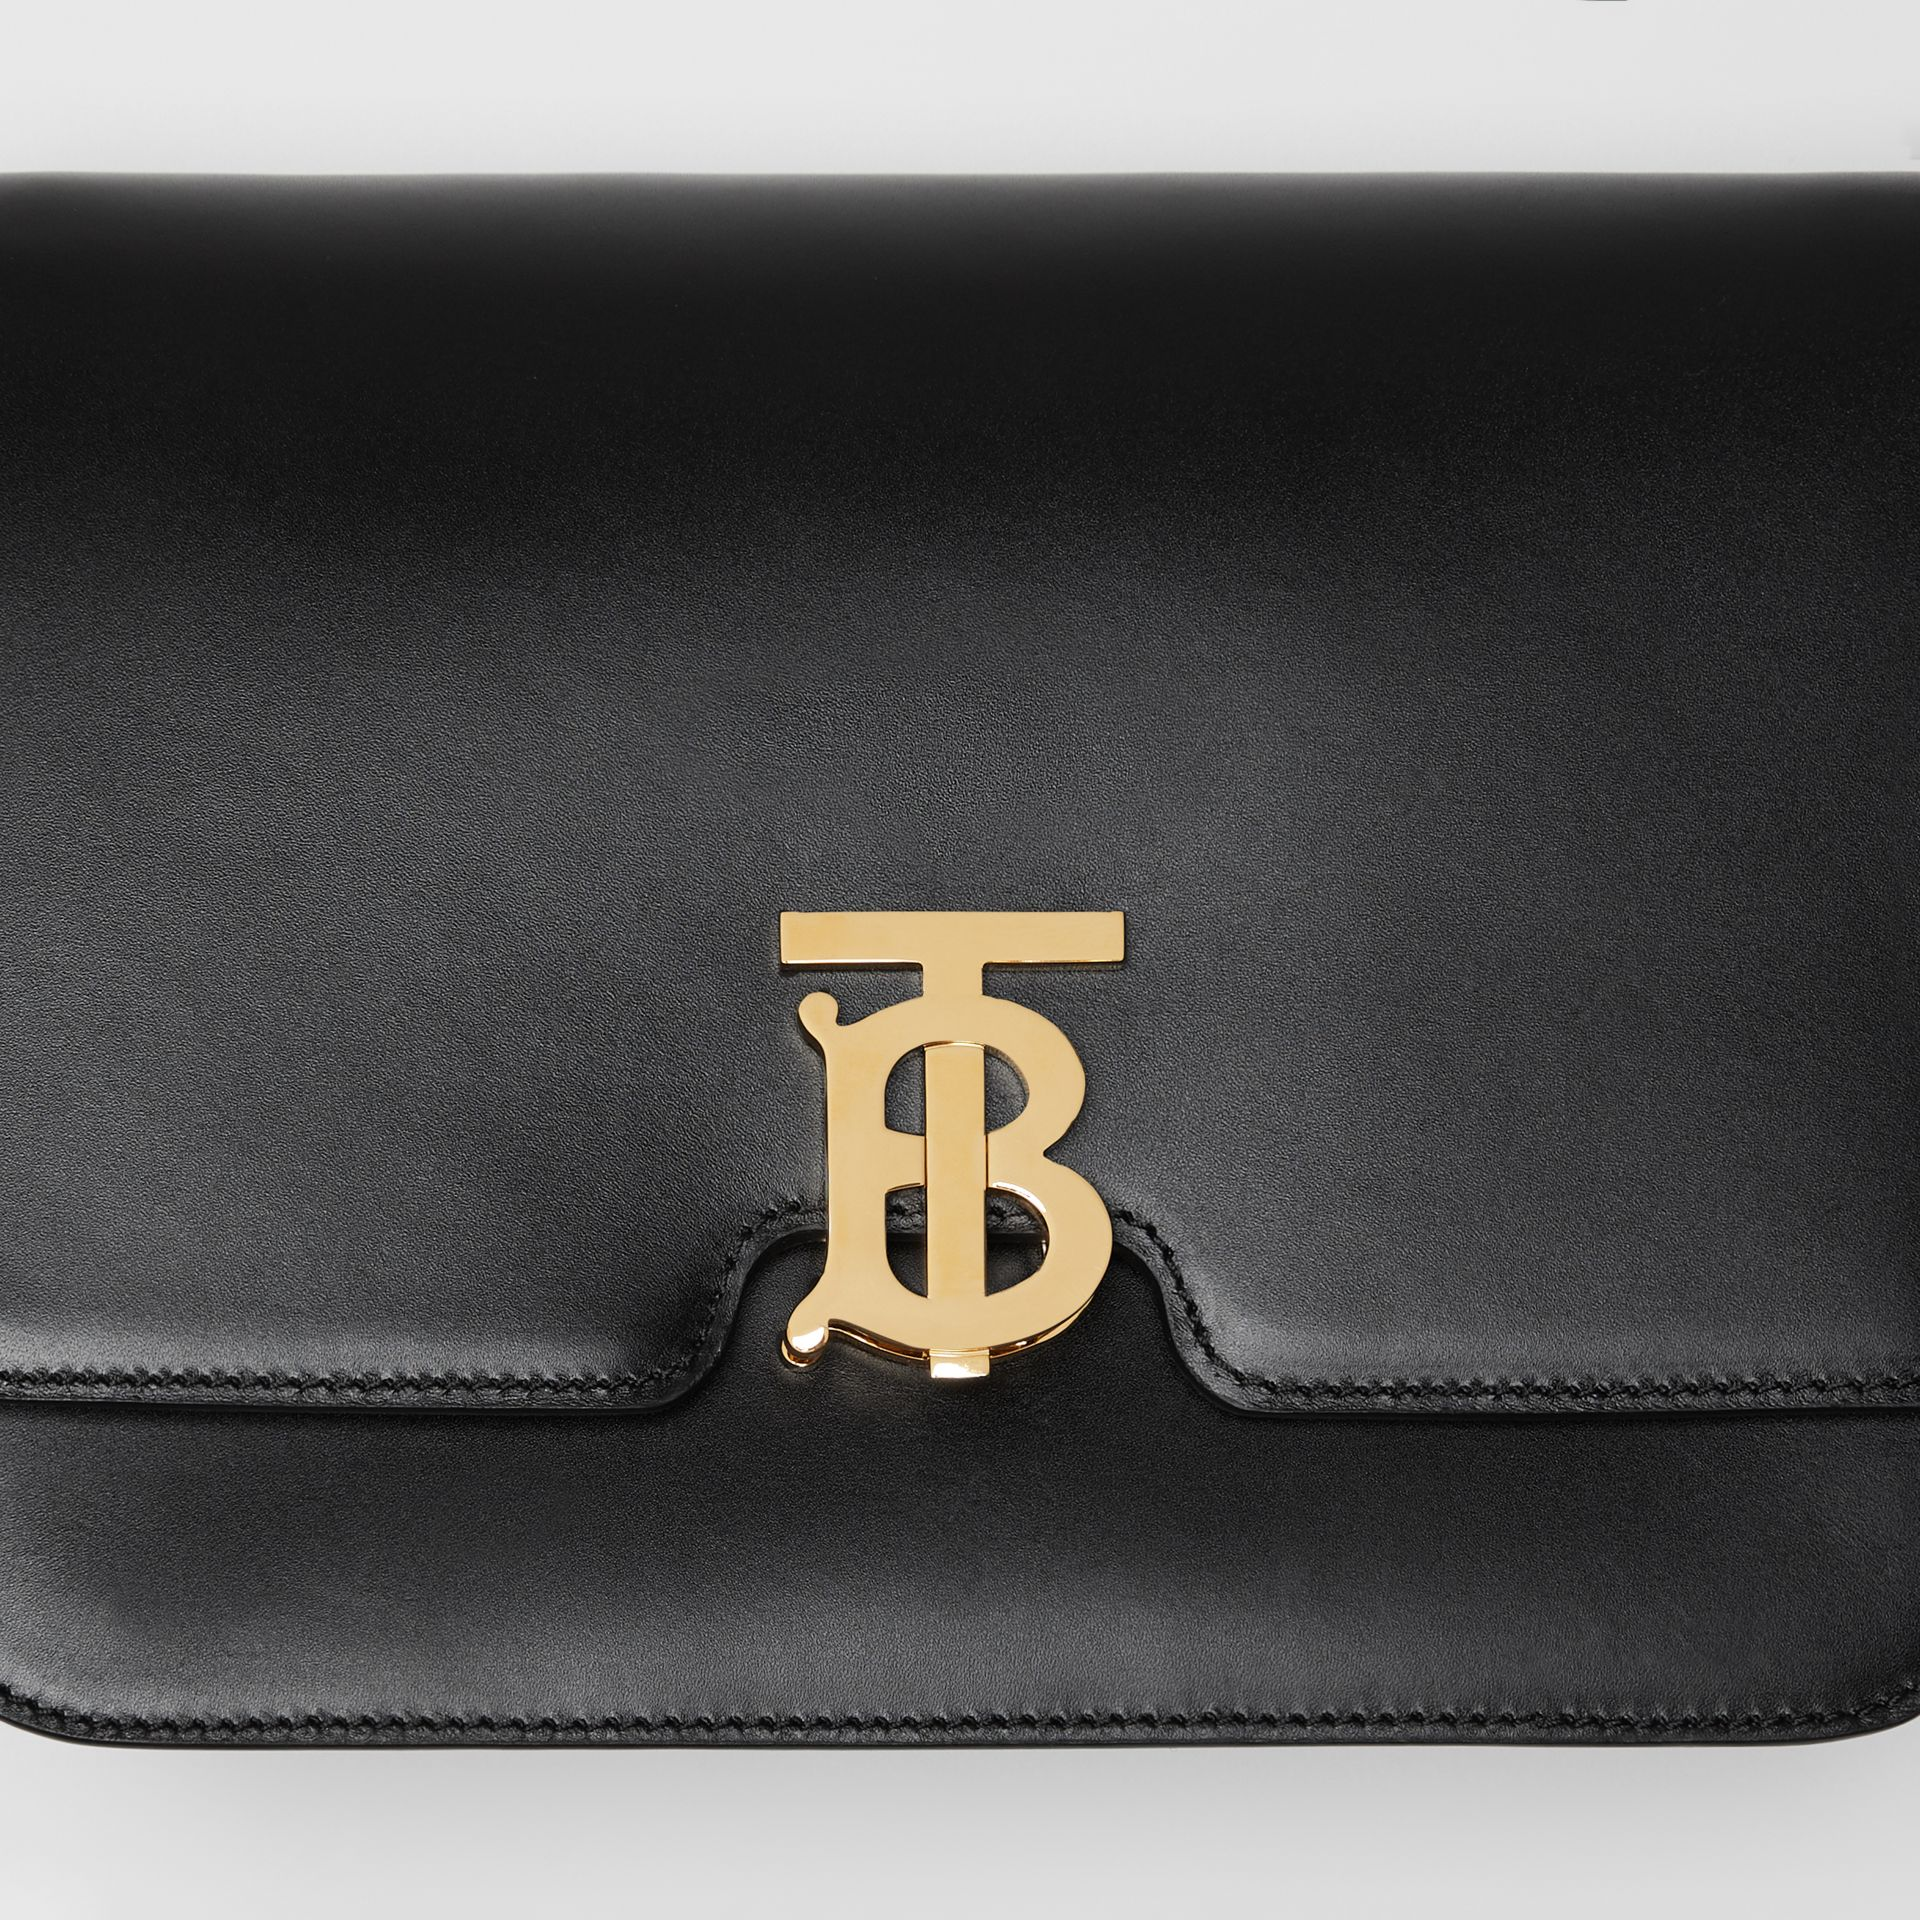 Medium Leather TB Bag in Black - Women | Burberry United Kingdom - gallery image 8